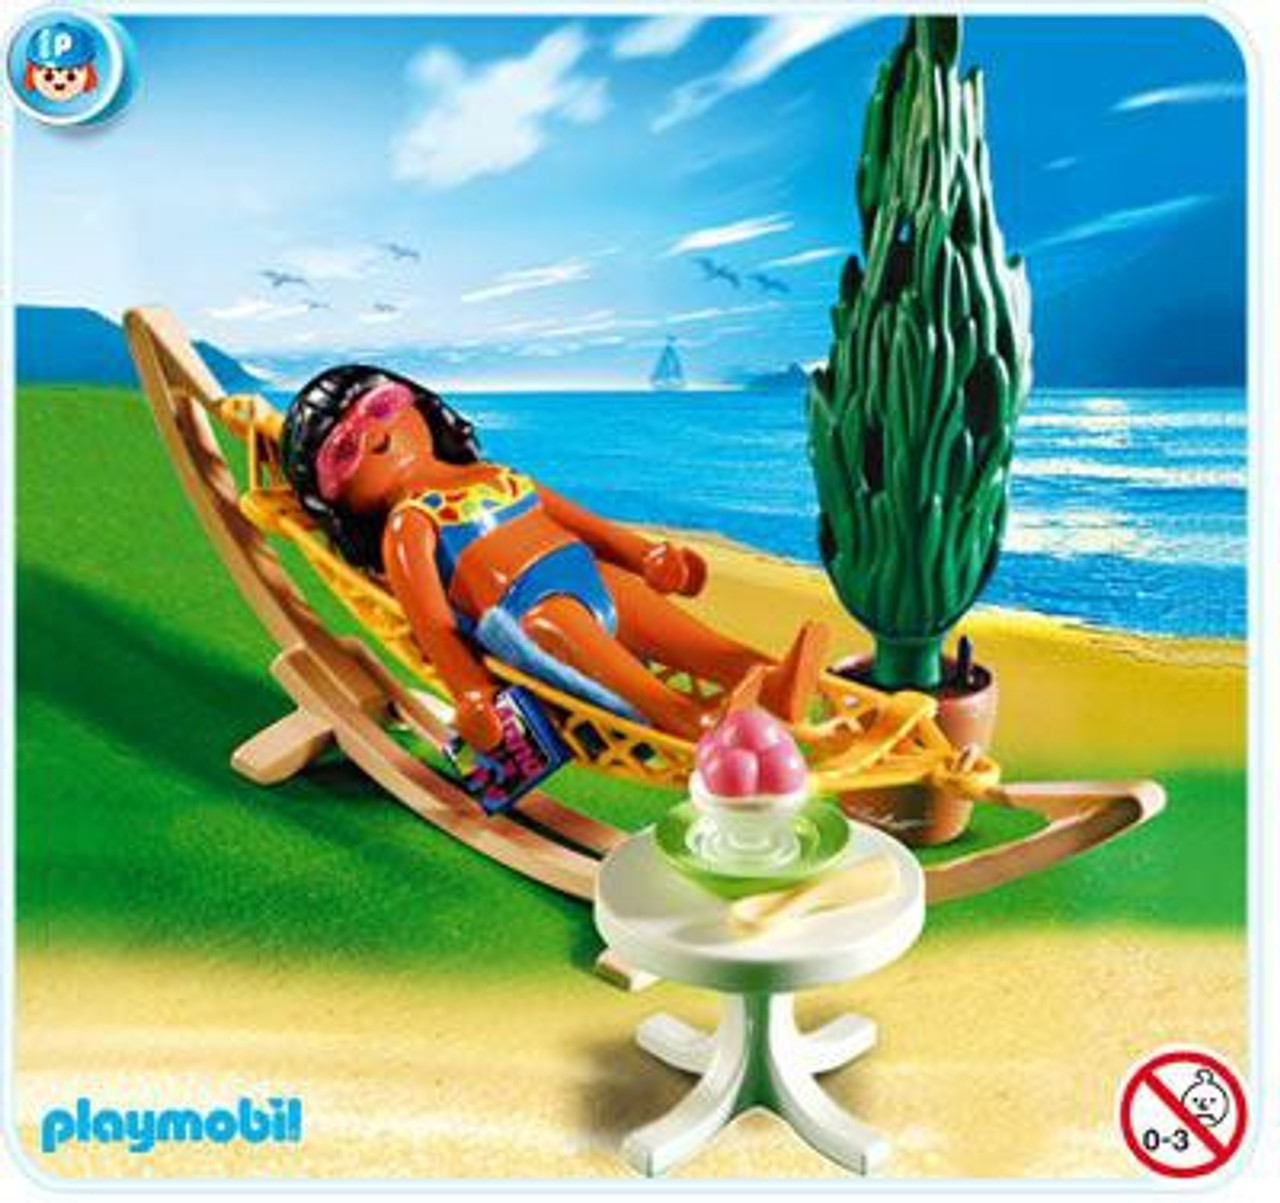 Playmobil Vacation & Leisure Woman in Hammock Set #4861